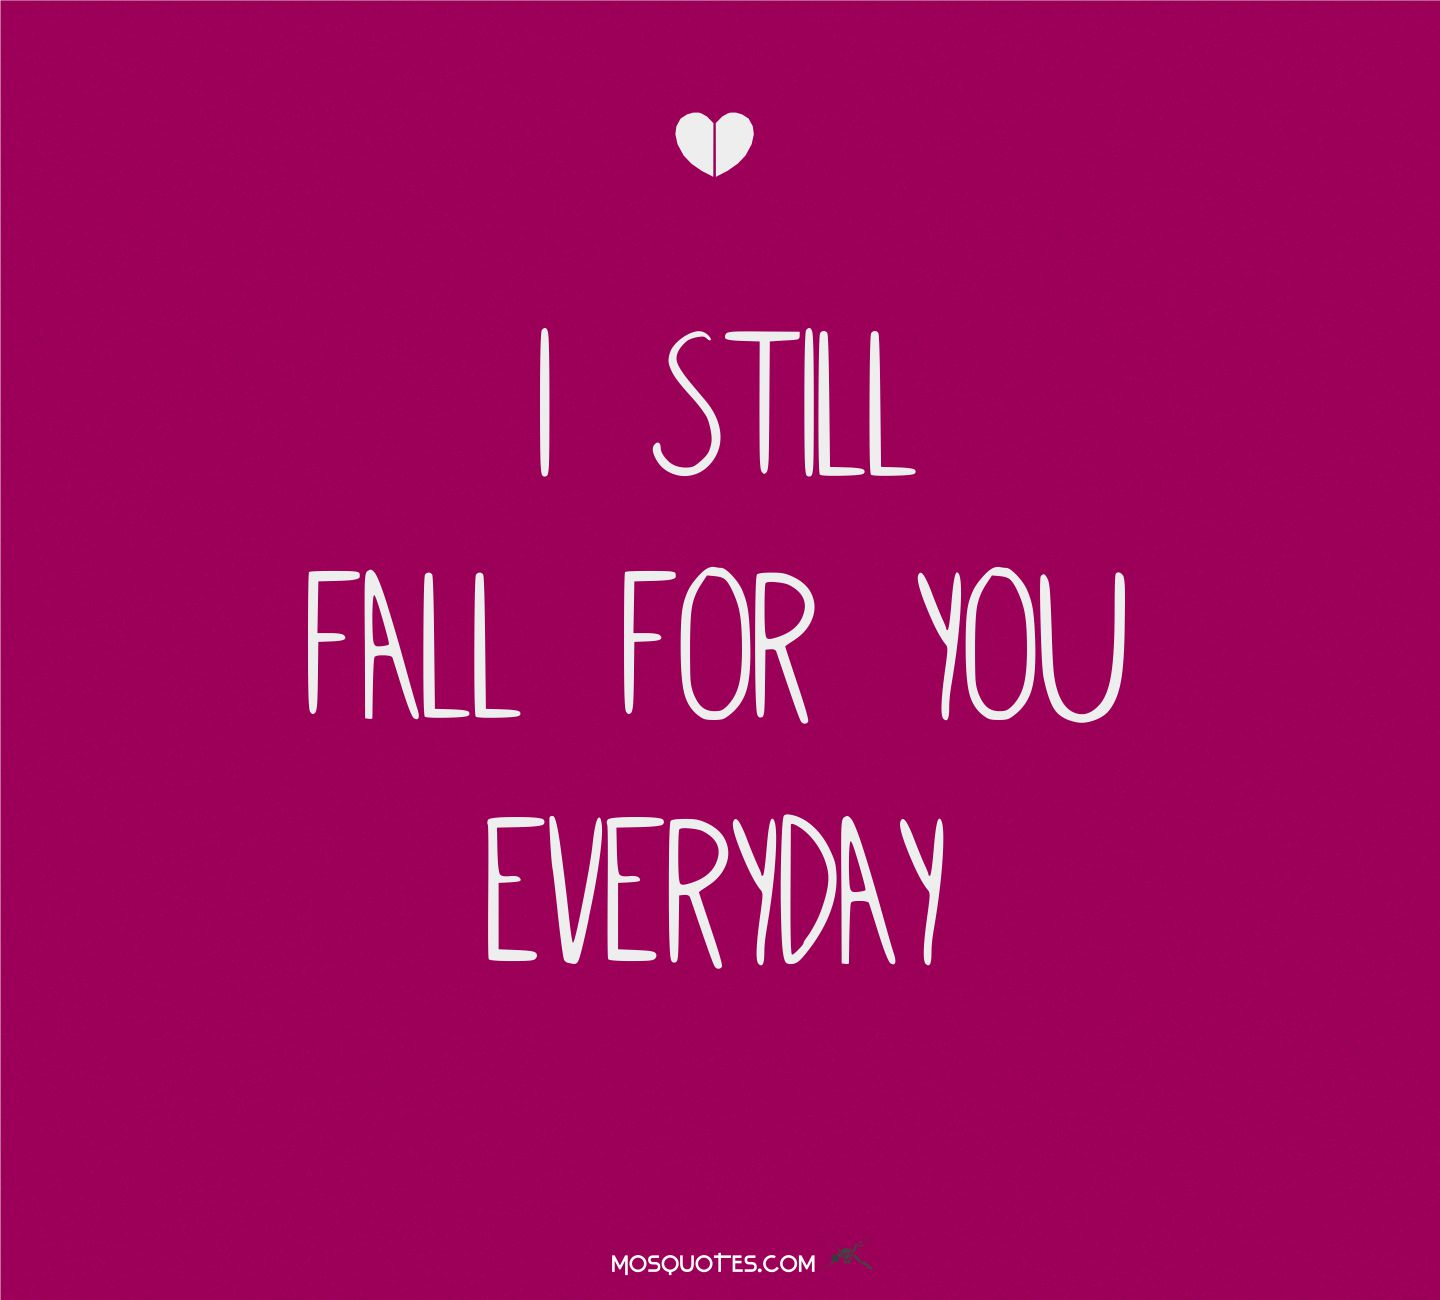 I Love You Everyday Quotes : Everyday I Fall More In Love With You Quotes. QuotesGram